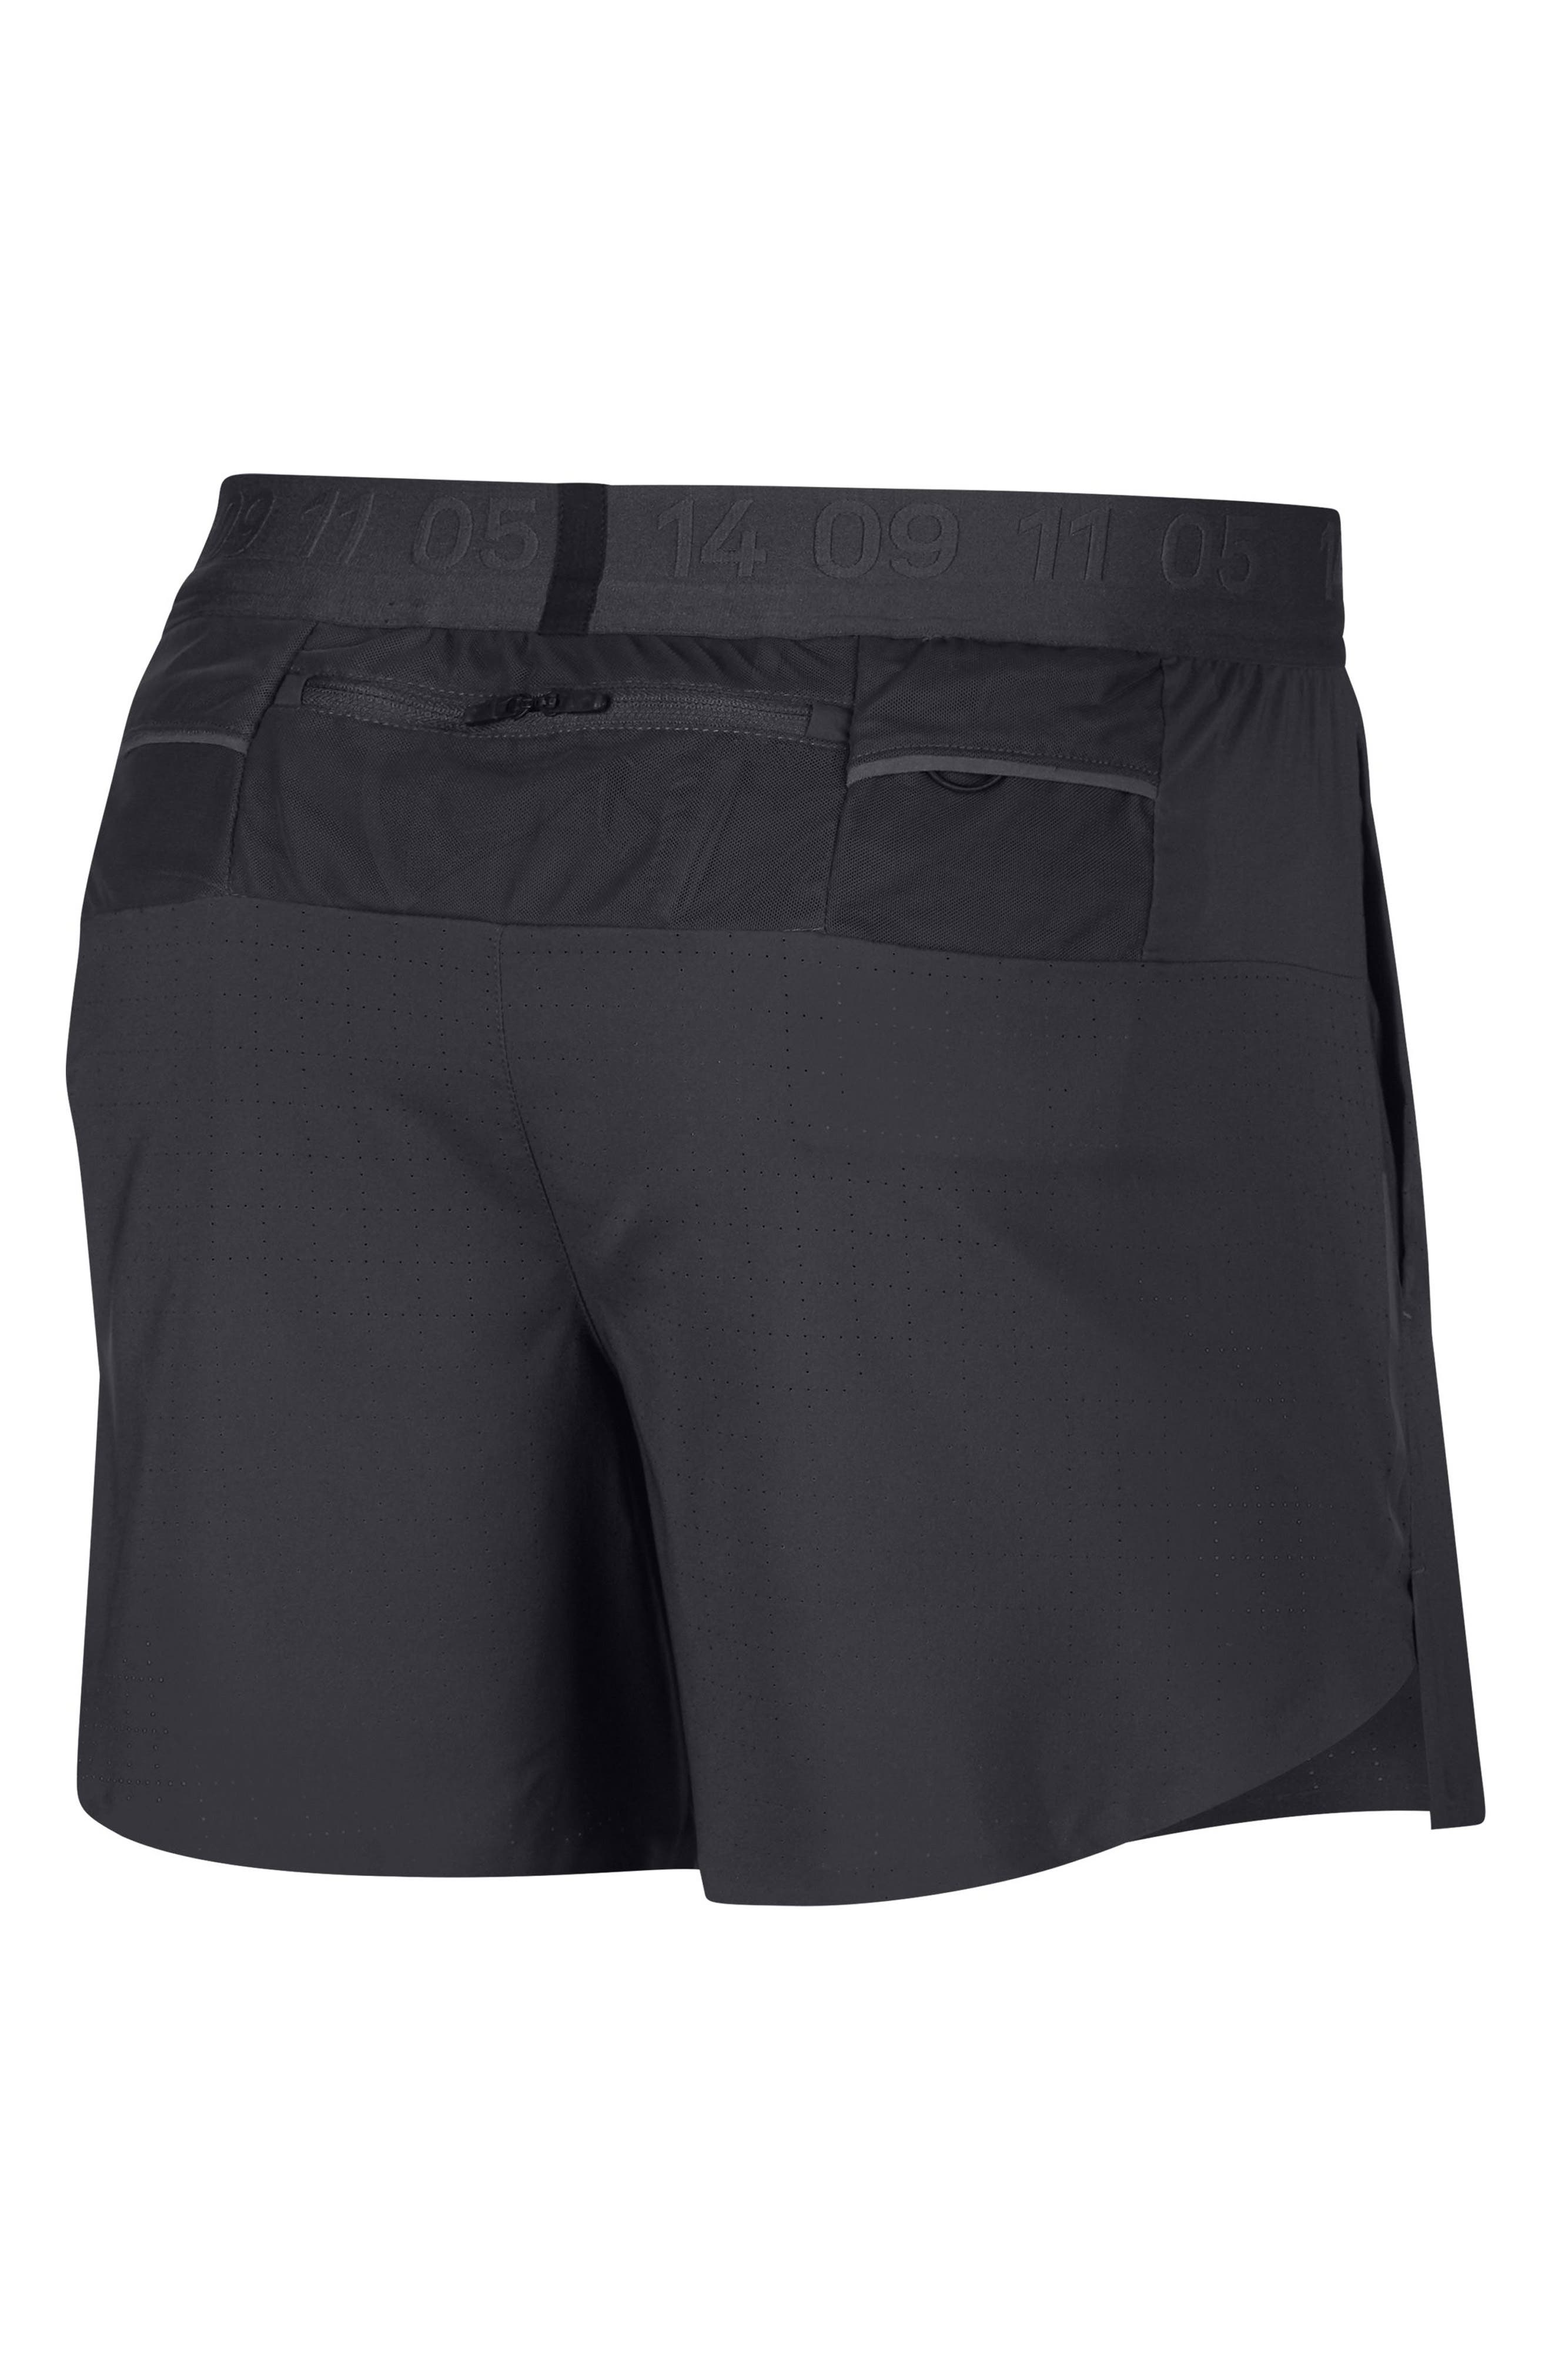 Running Shorts,                             Alternate thumbnail 7, color,                             ANTHRACITE/ ANTHRACITE